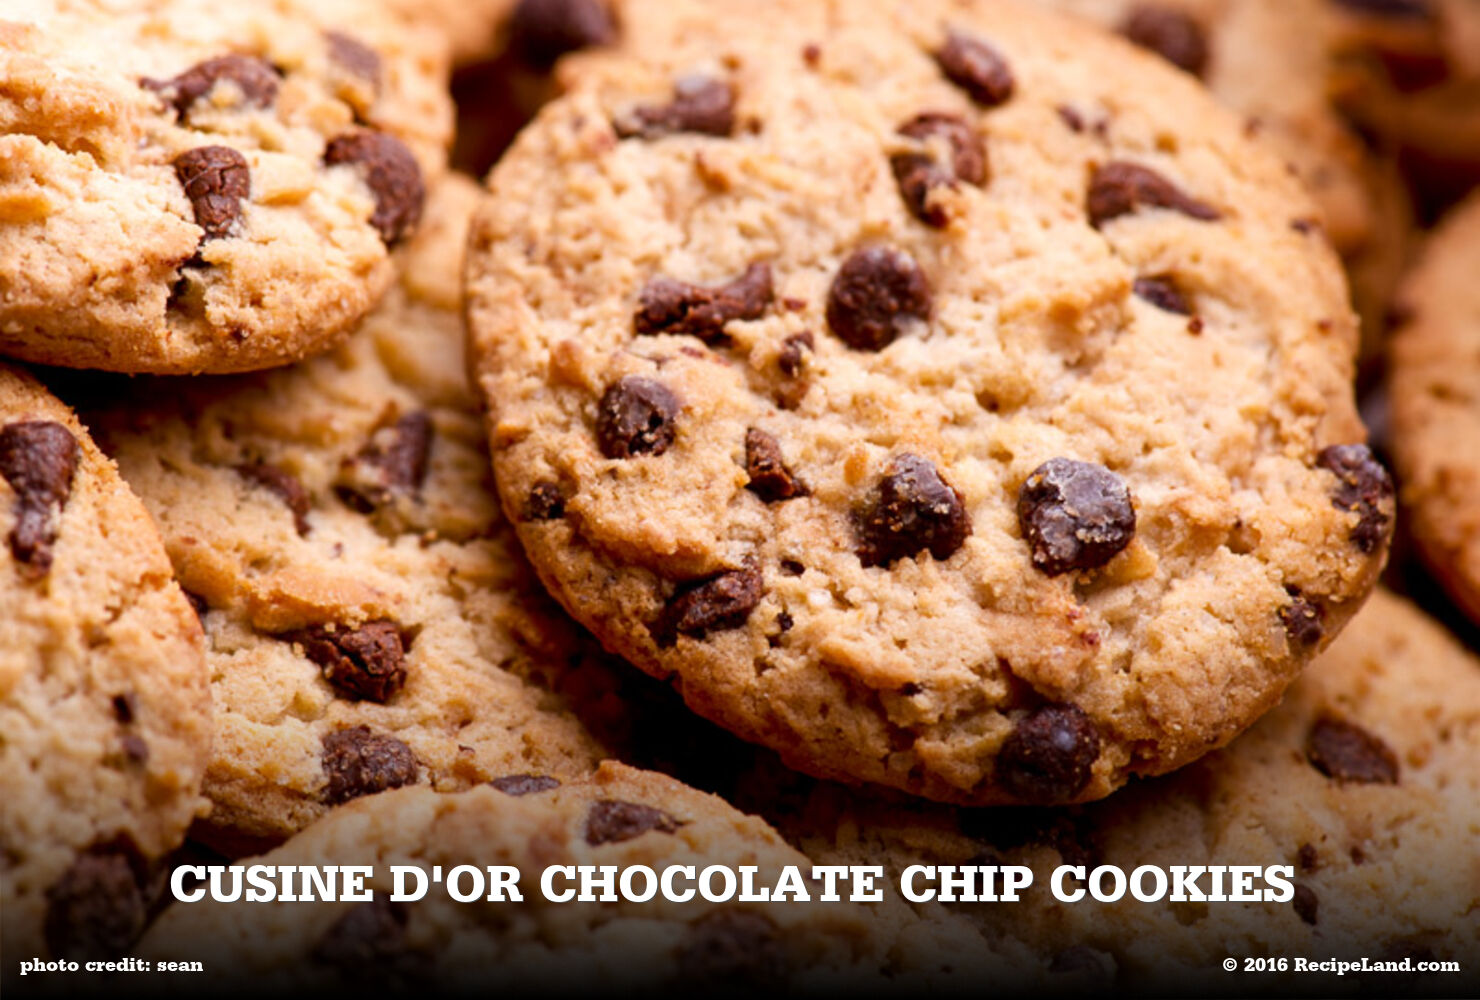 Cusine D'Or Chocolate Chip Cookies